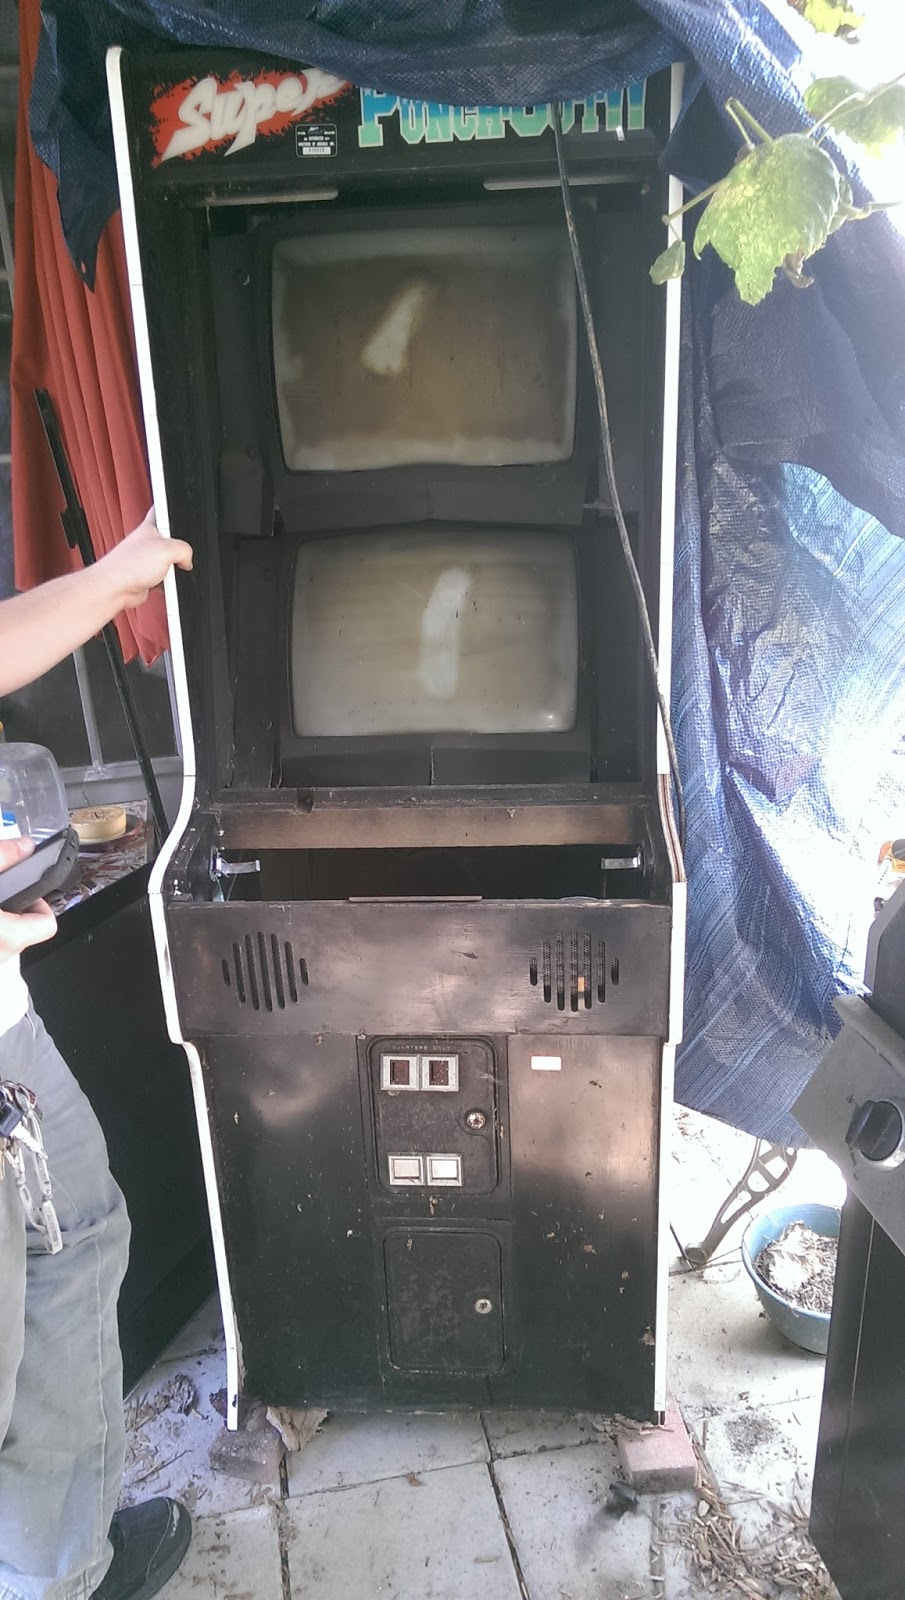 Filthy Pants: A Computer Blog: My Super Punch Out!! Arcade Cabinet